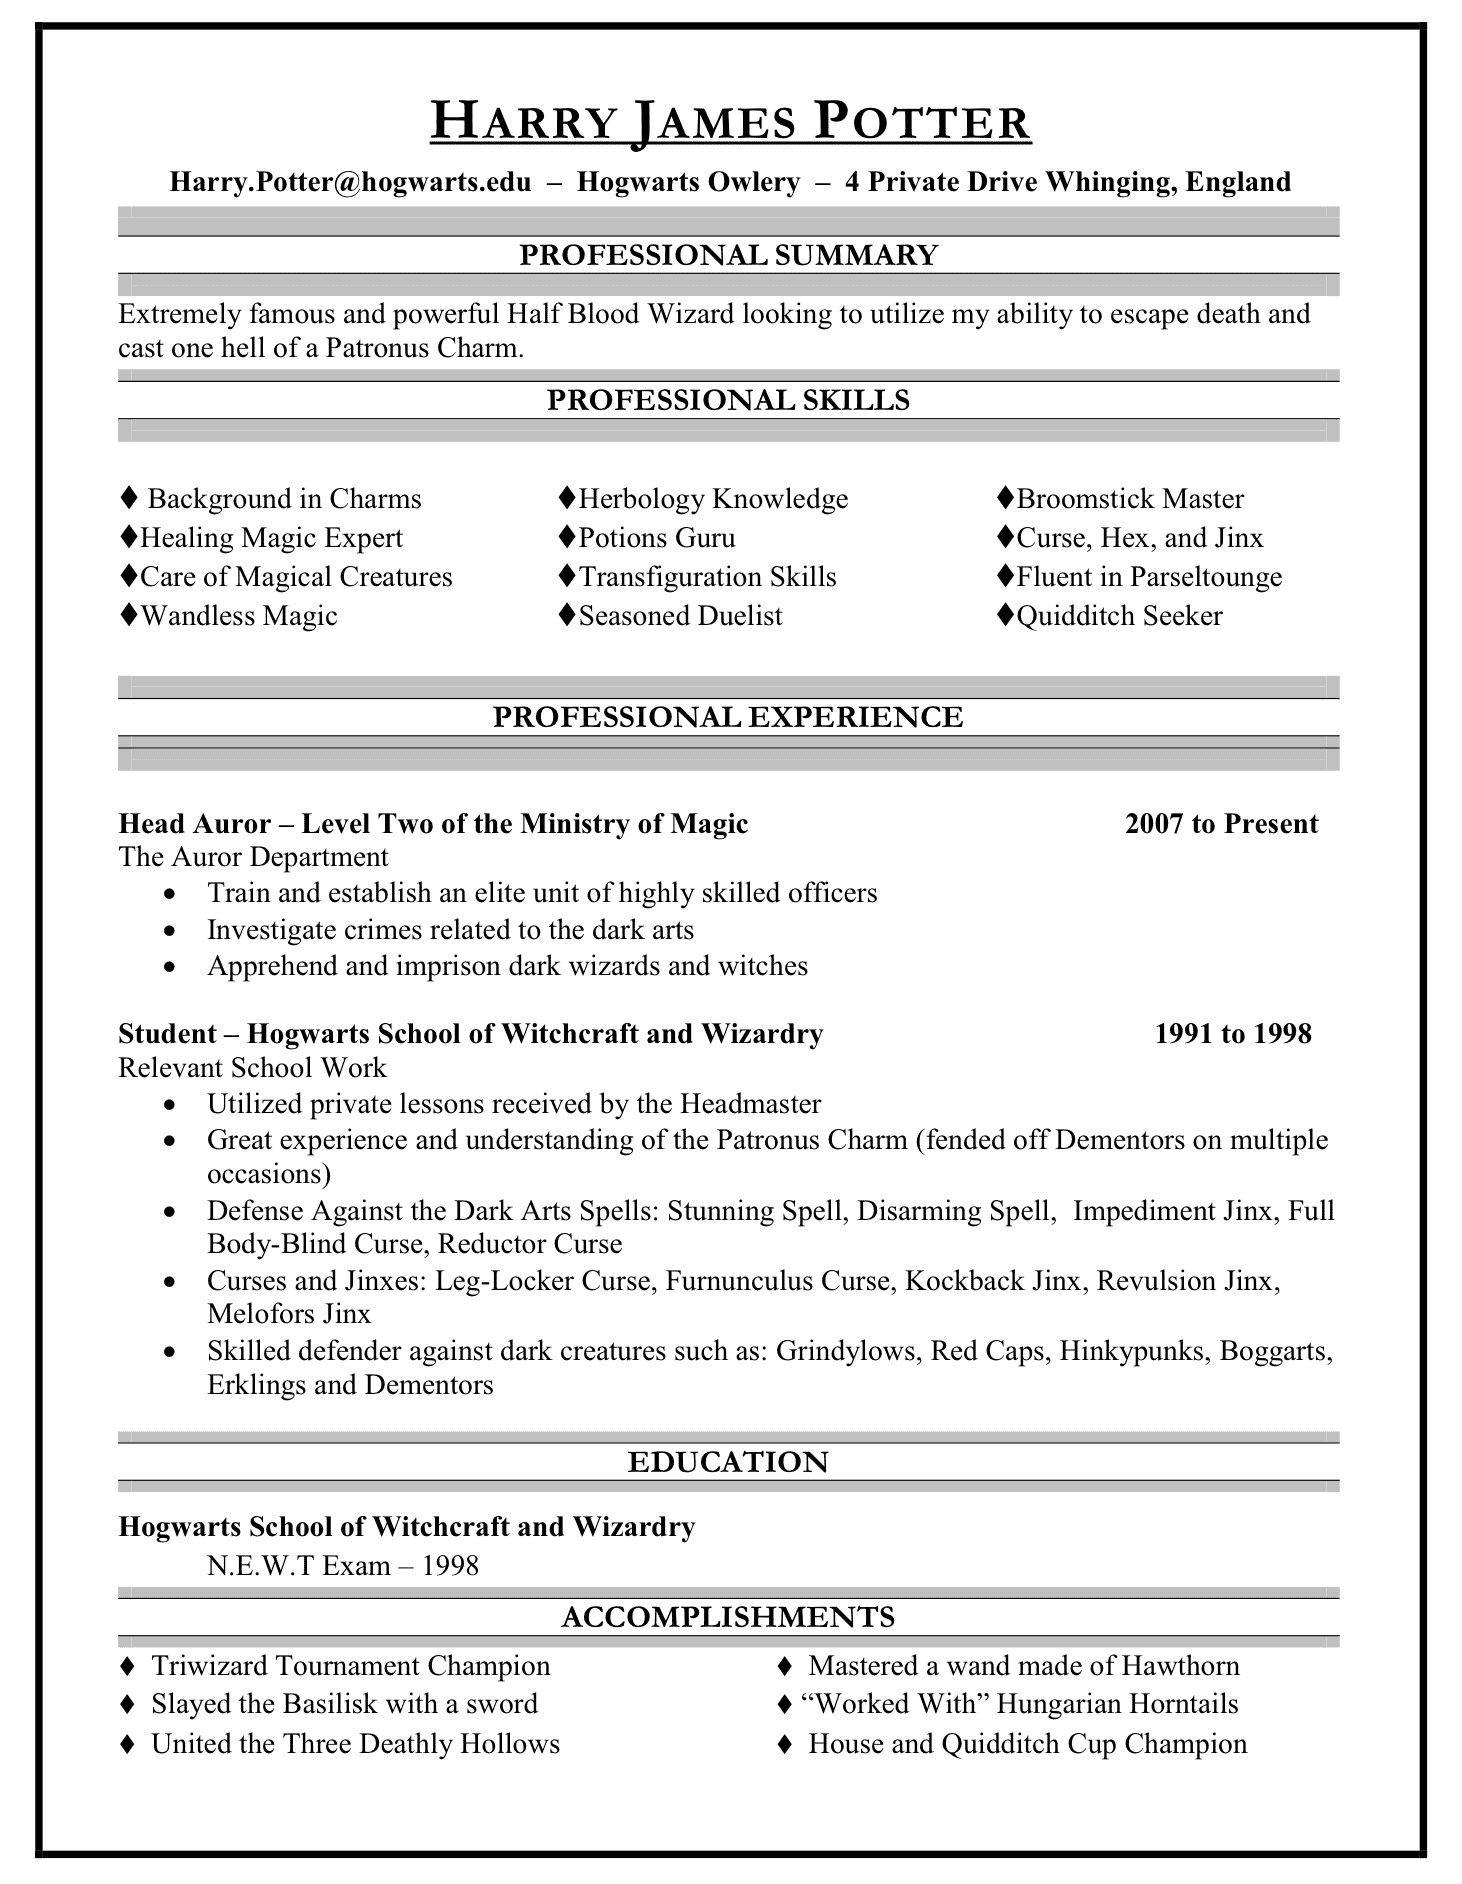 Harry Potter's hypothetical resume